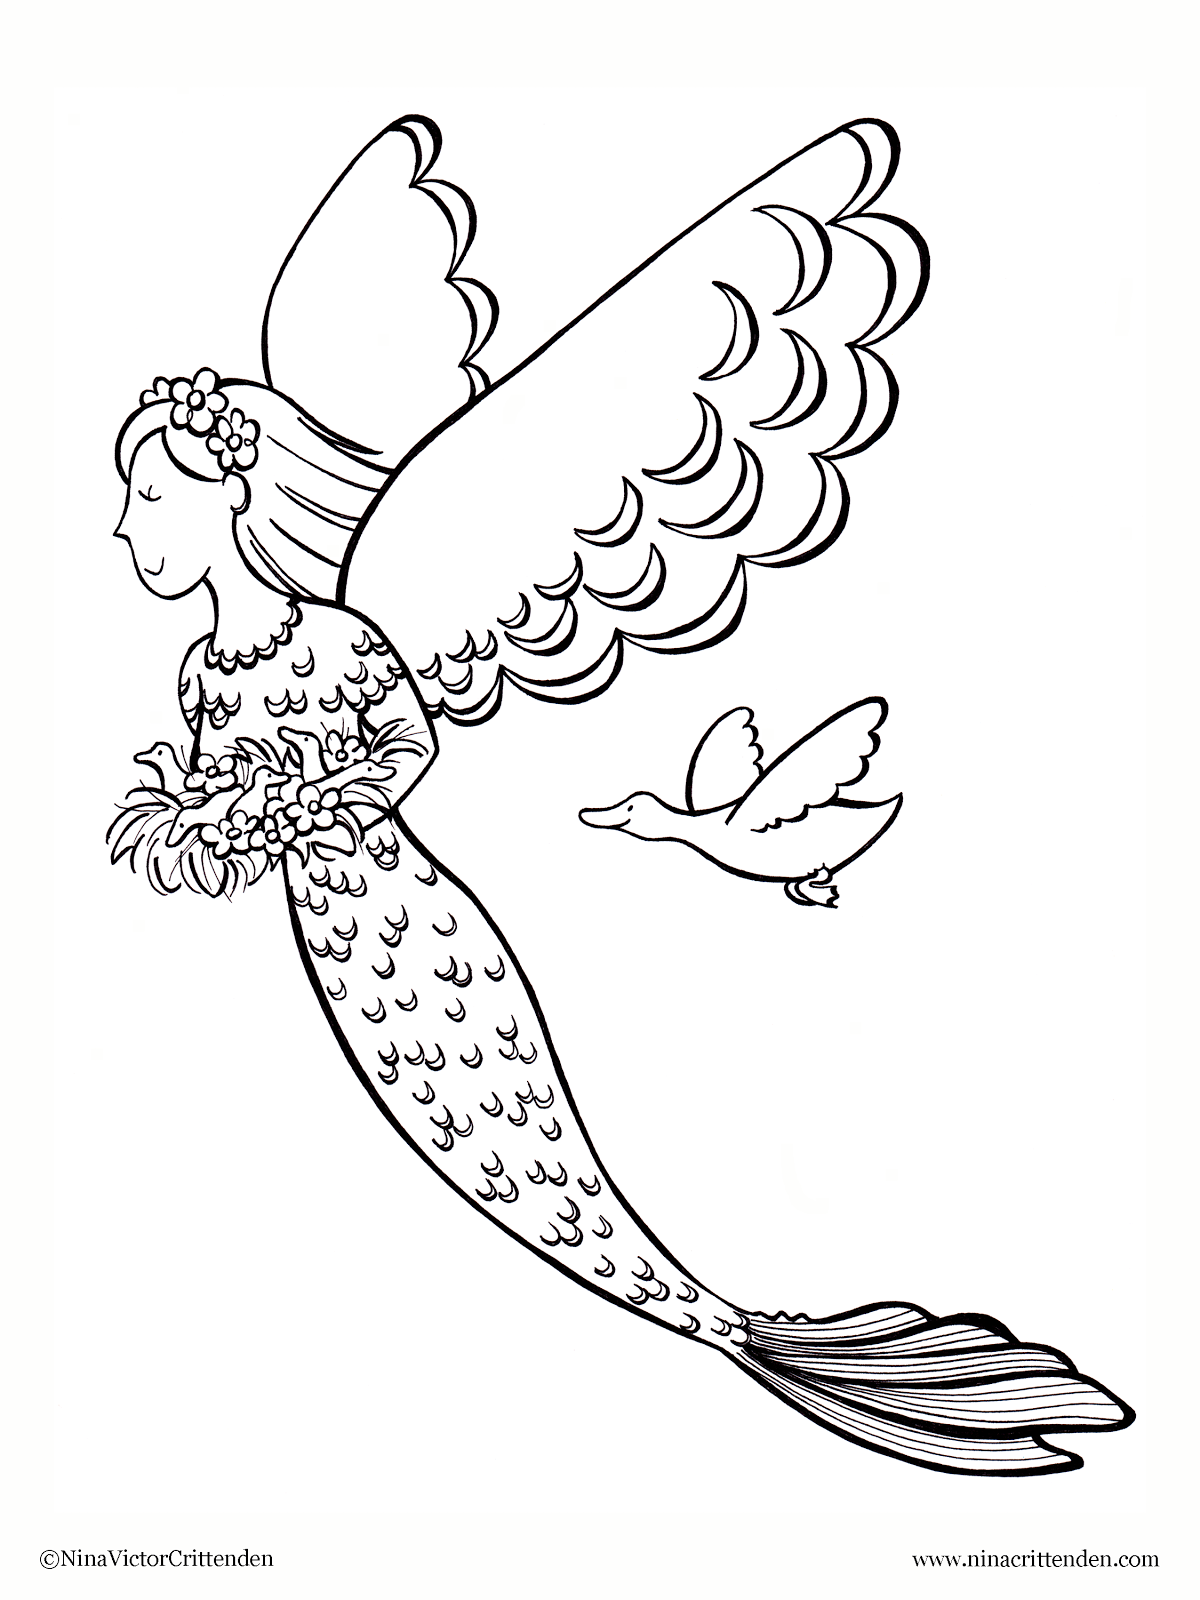 Free Printable Mermaid Coloring Pages For Kids | 1600x1200